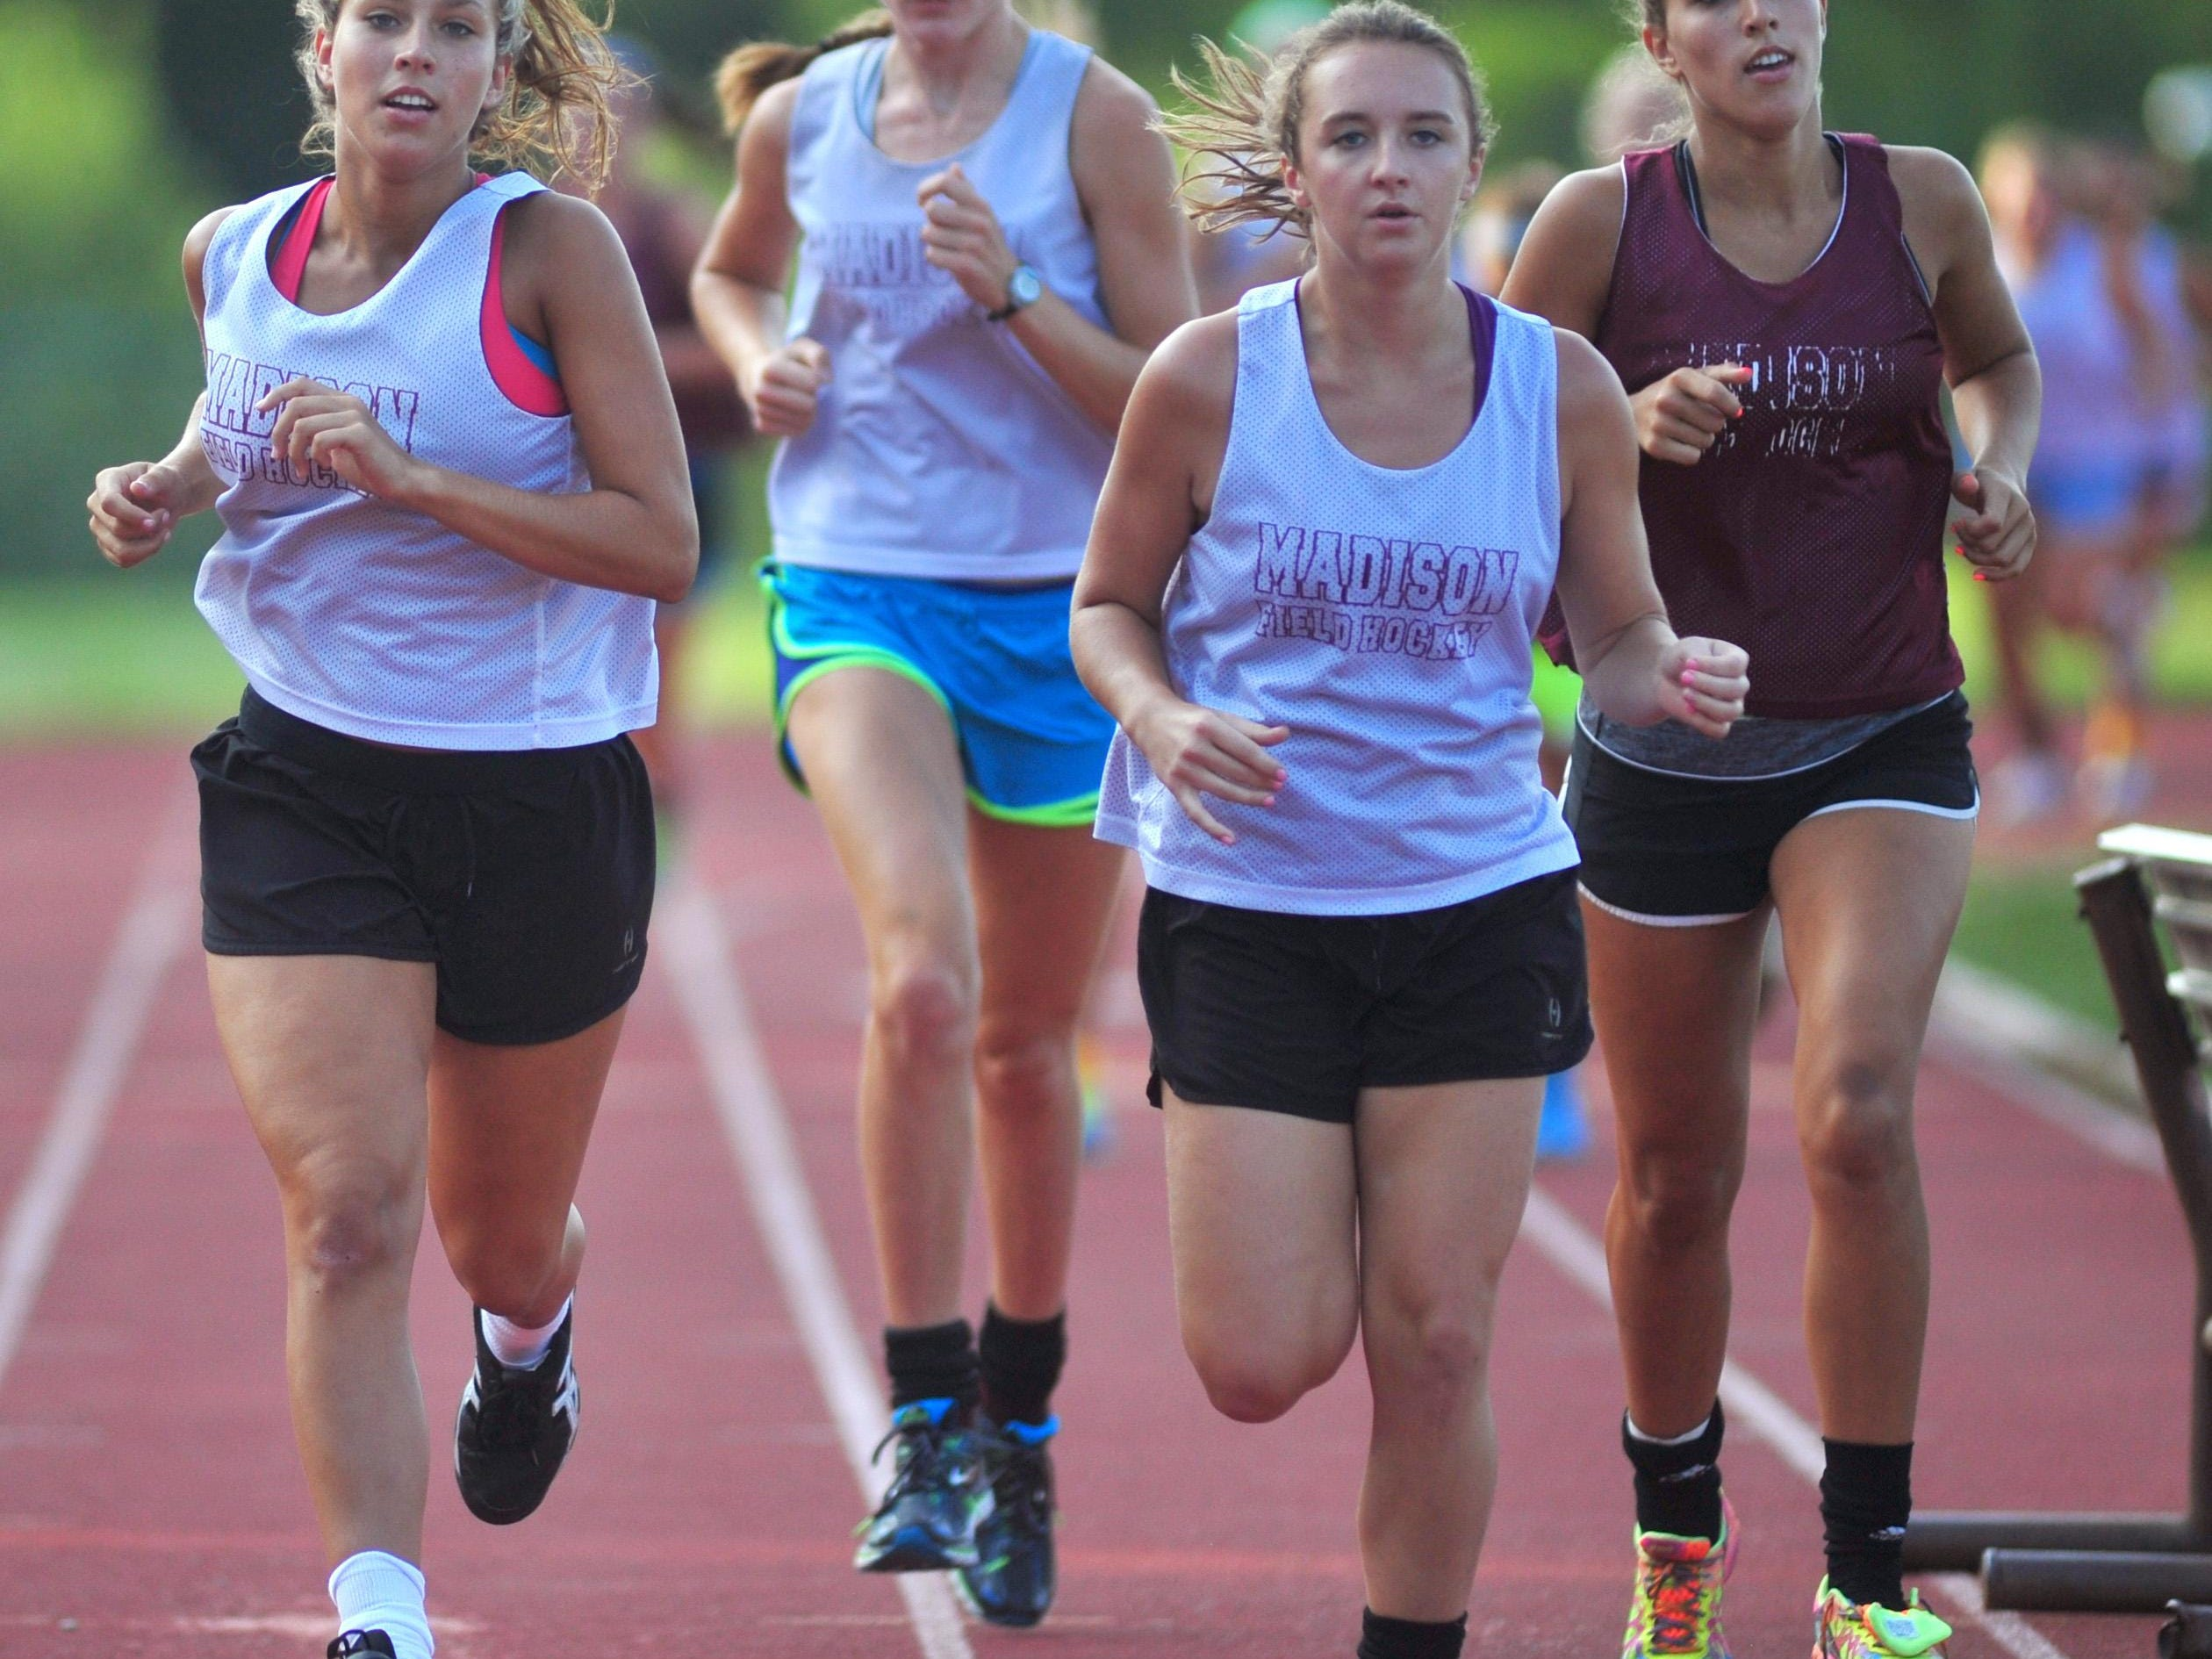 Captains lead the team on a run before practice starts: seniors Kaitlyn deSilva, Caroline Turnbull, Emma Ticknor and Amanda daSilva. The Madison field hockey team practices Monday night at the high school, Madison, NJ. Monday, Aug. 24, 2015. Special to NJ Press Media/Karen Mancinelli/Daily Record MOR field hockey preview